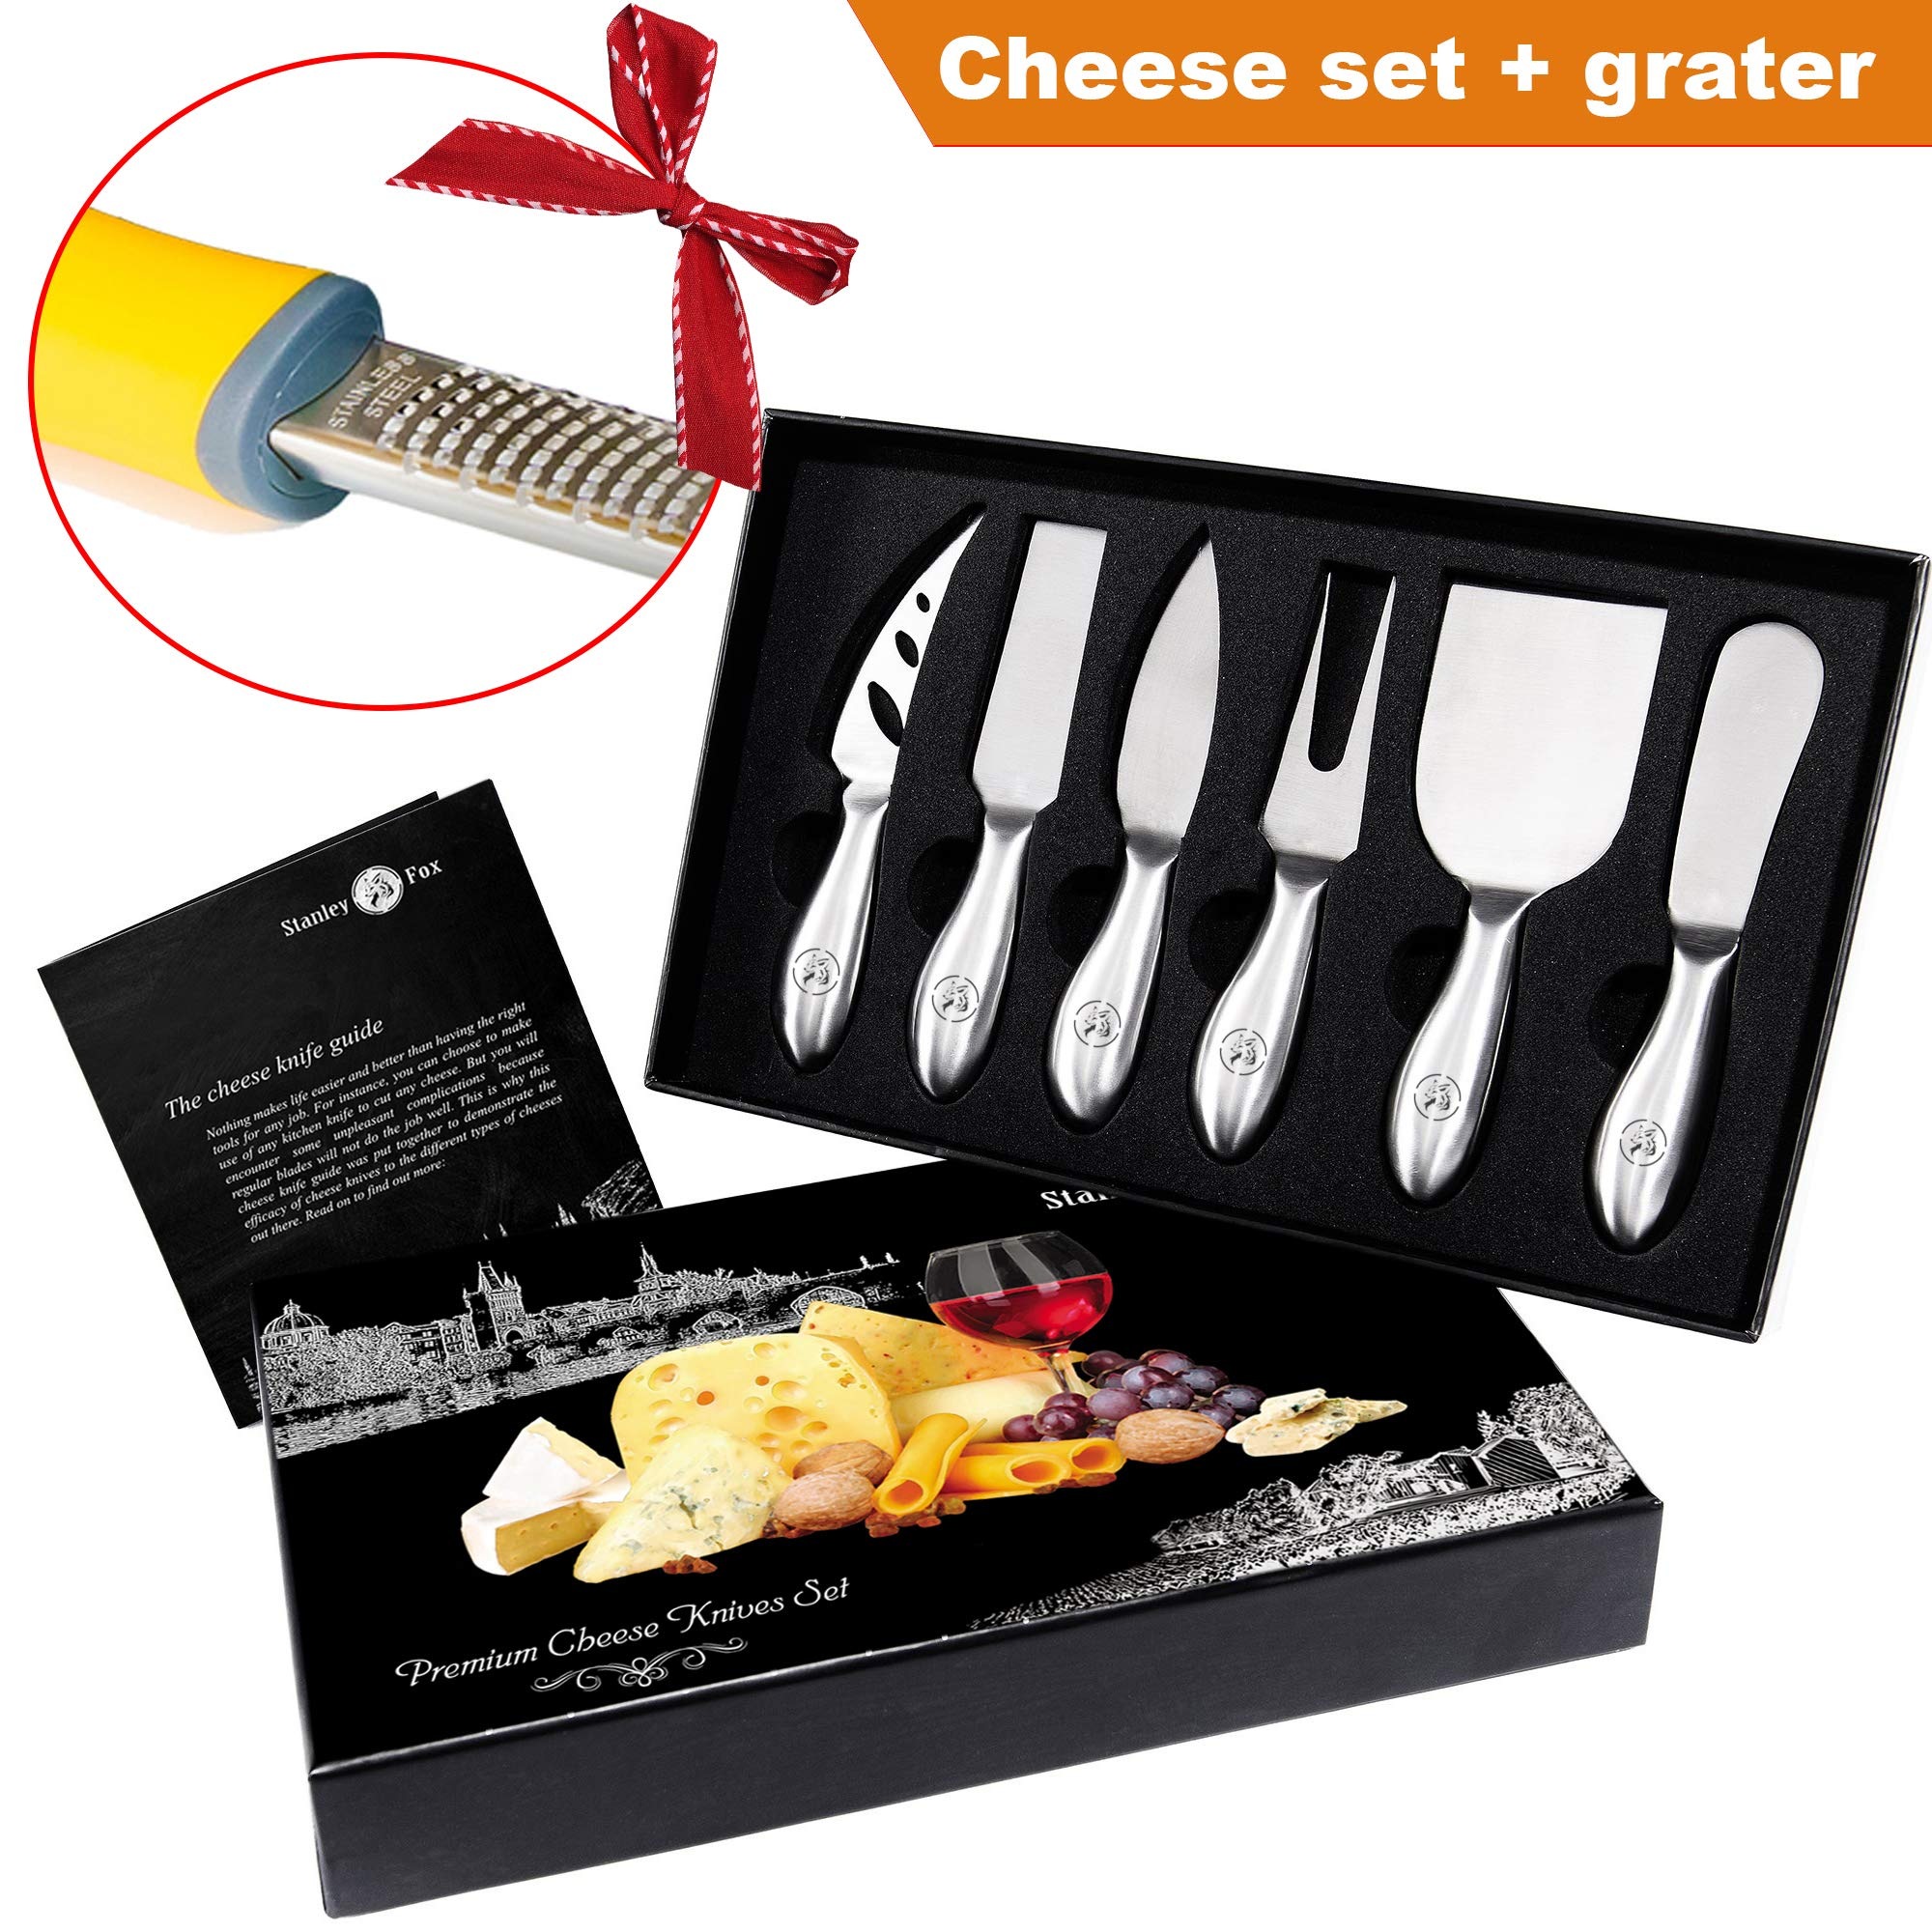 Cheese Knife set - Parmesan Cheese Grater - 6 Cheese knives - Cheese spreader - Stainless Steel Cheese Knives Collection - Cutlery Set